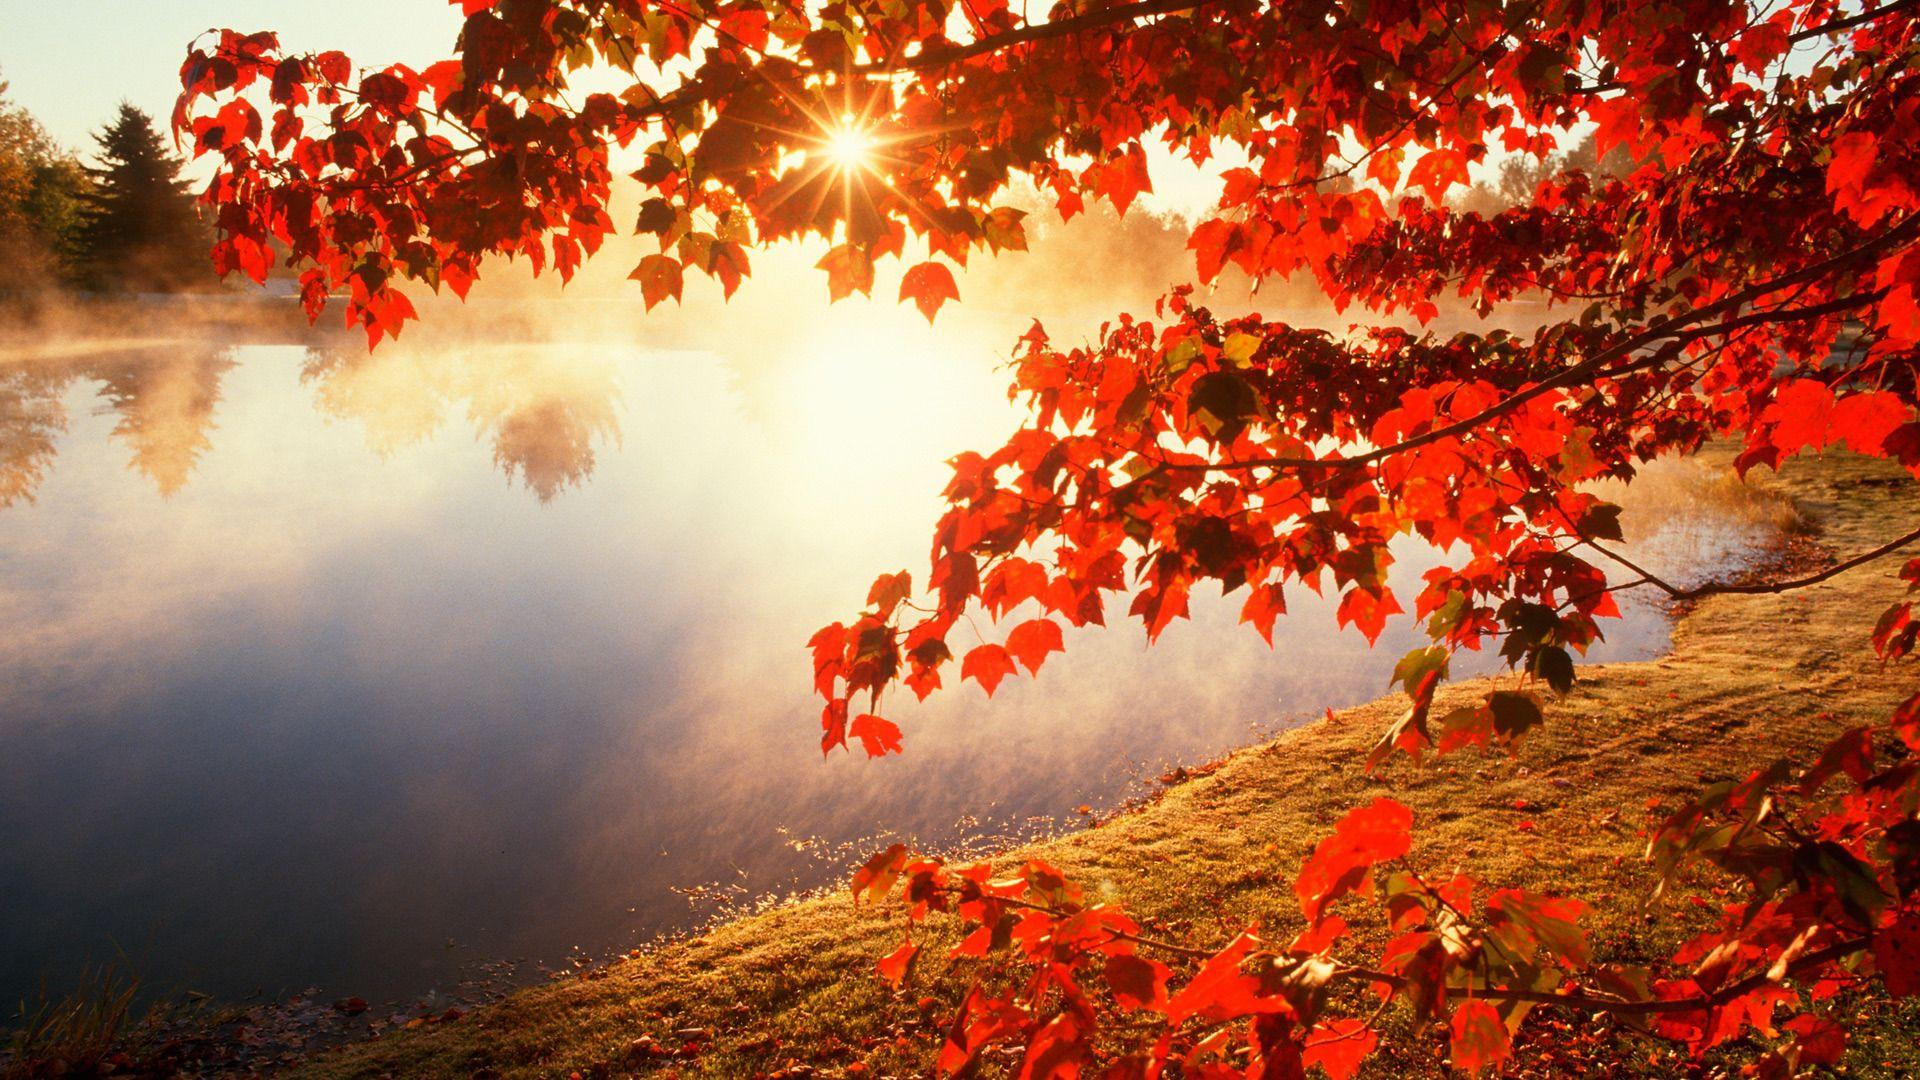 Autumn Leaves Wallpapers | HD Wallpapers Pulse